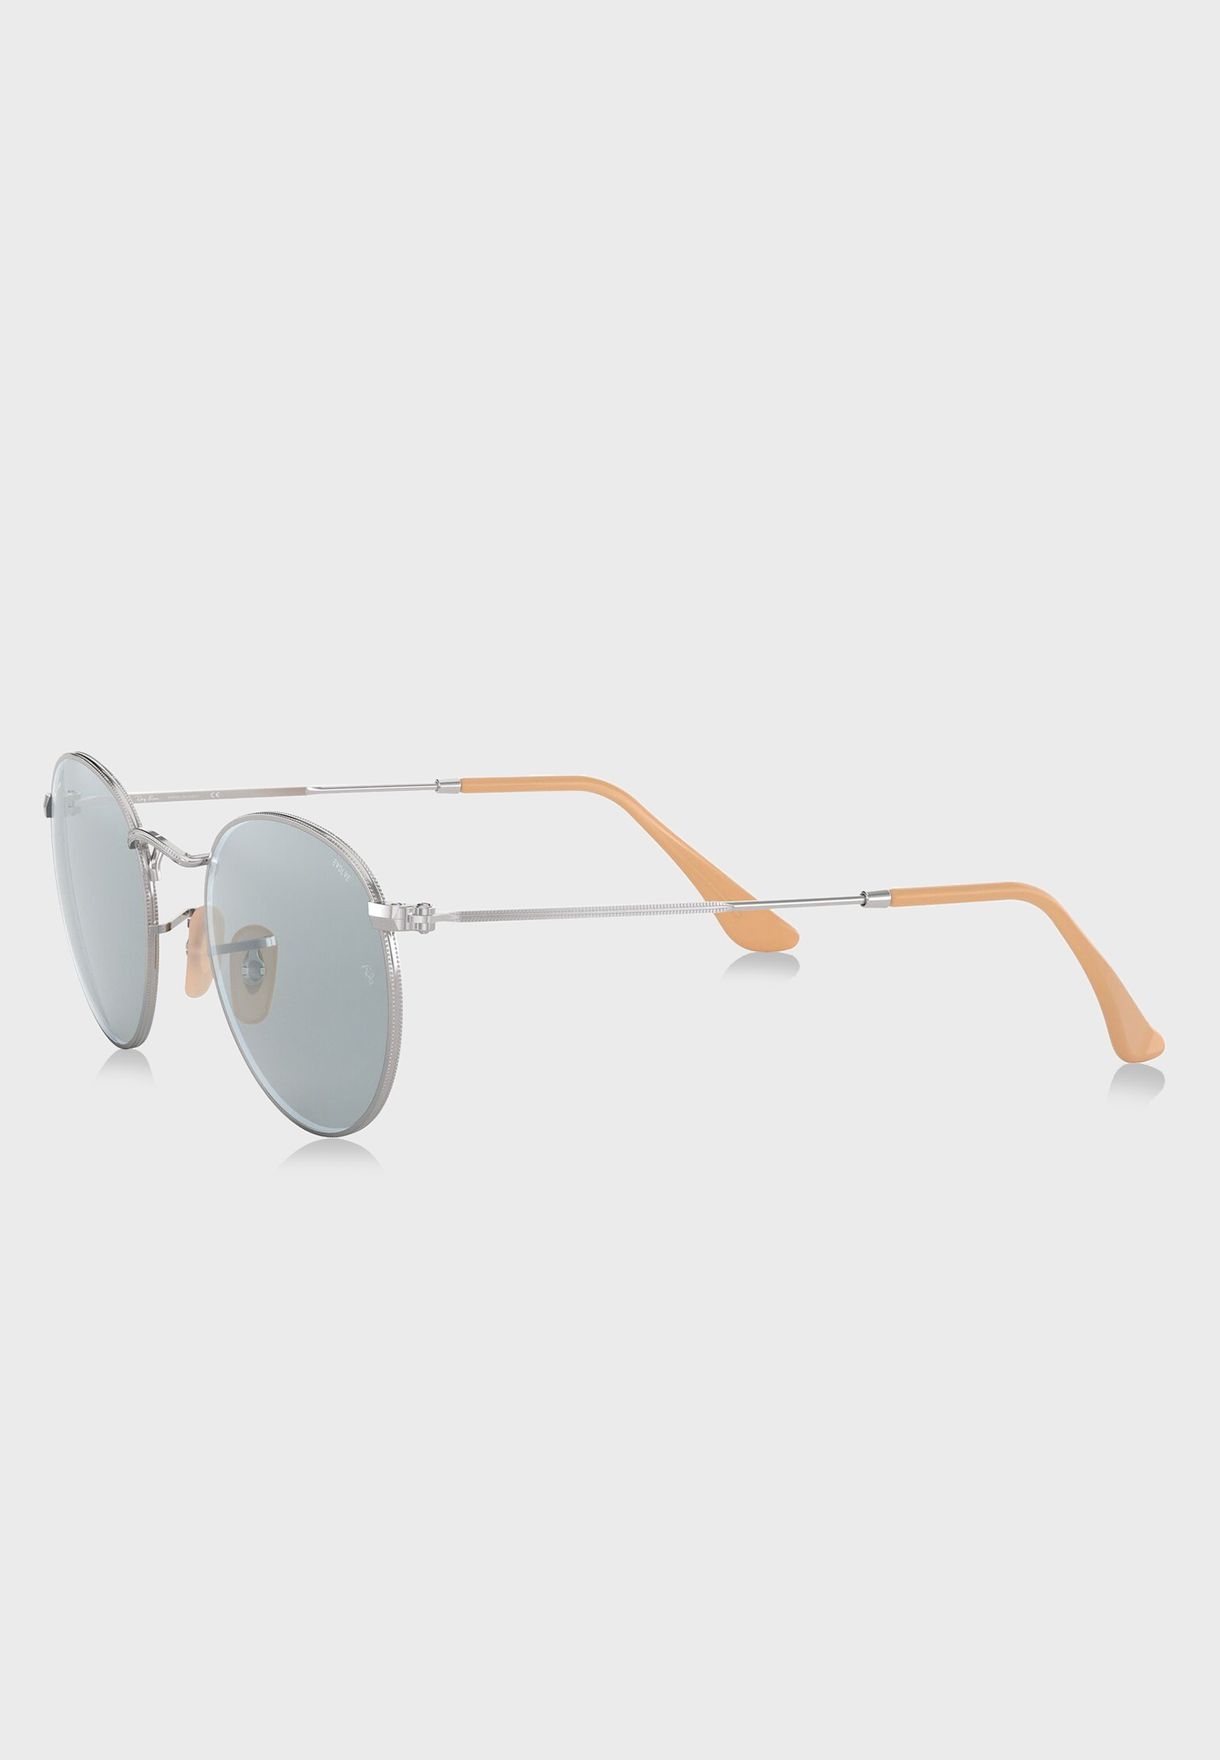 0RB3447 Round Sunglasses